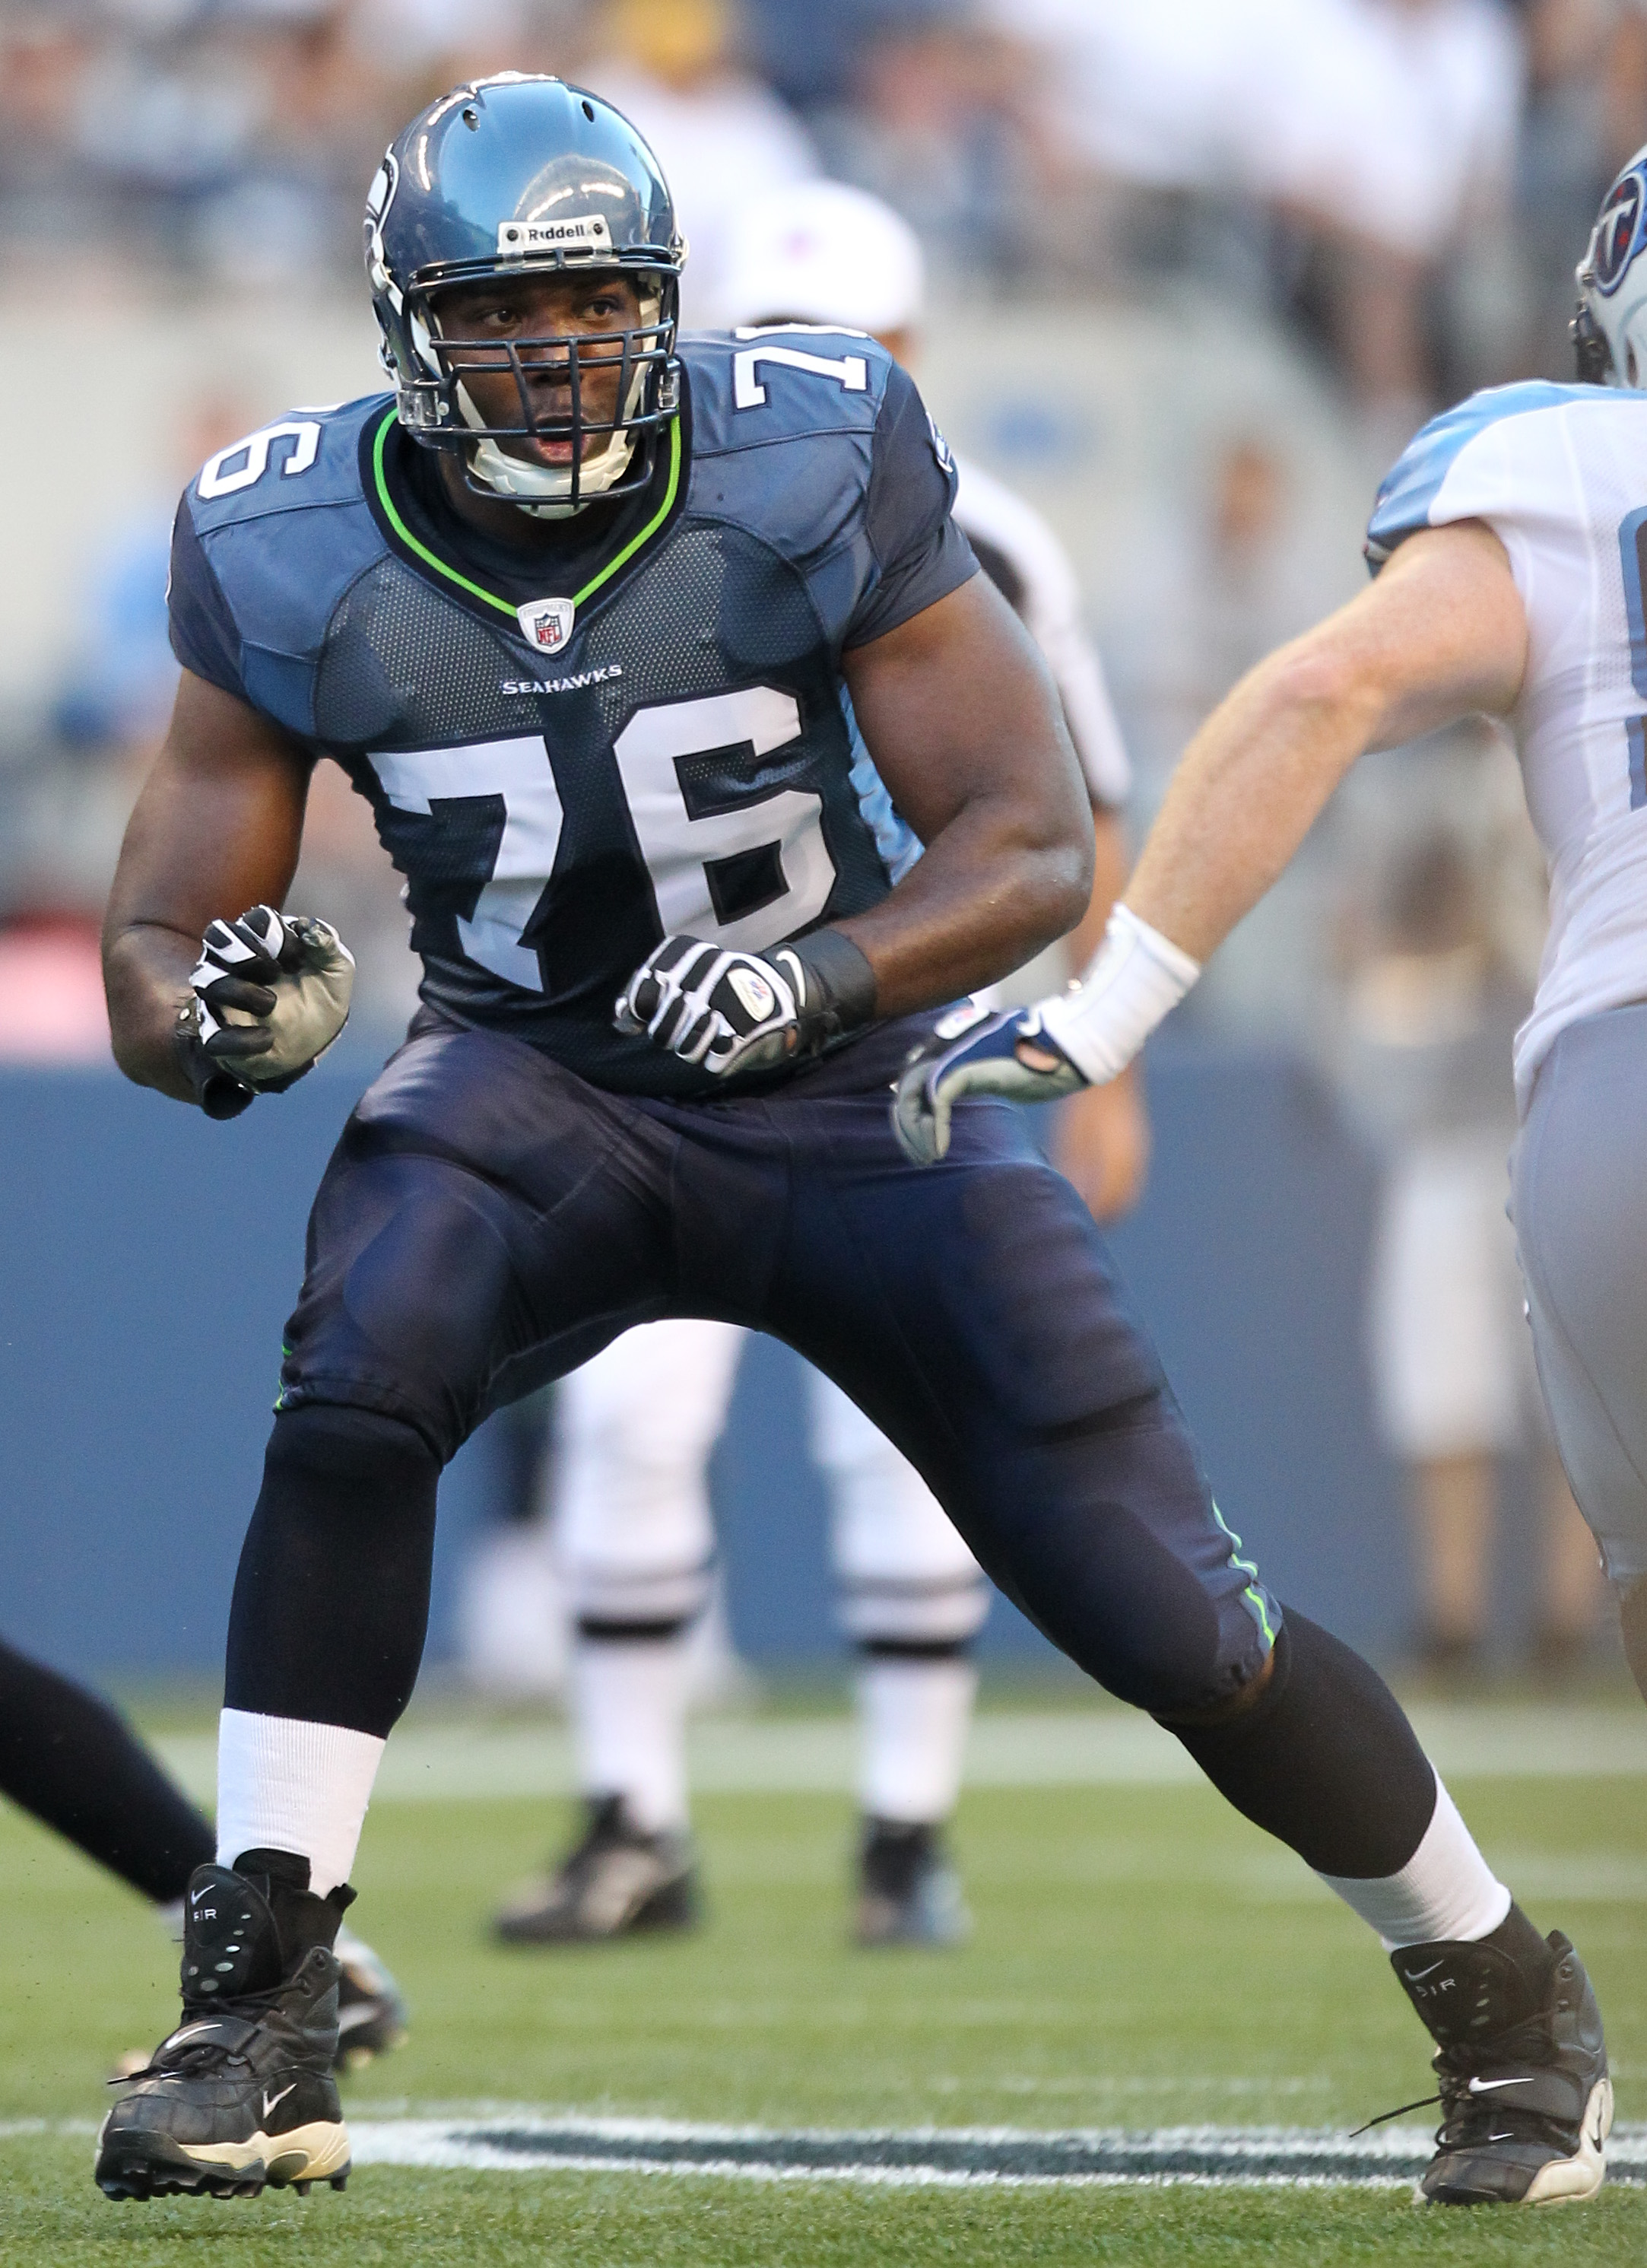 Until he got injured, Russell Okung was playing great in the place of legend, Walter Jones.